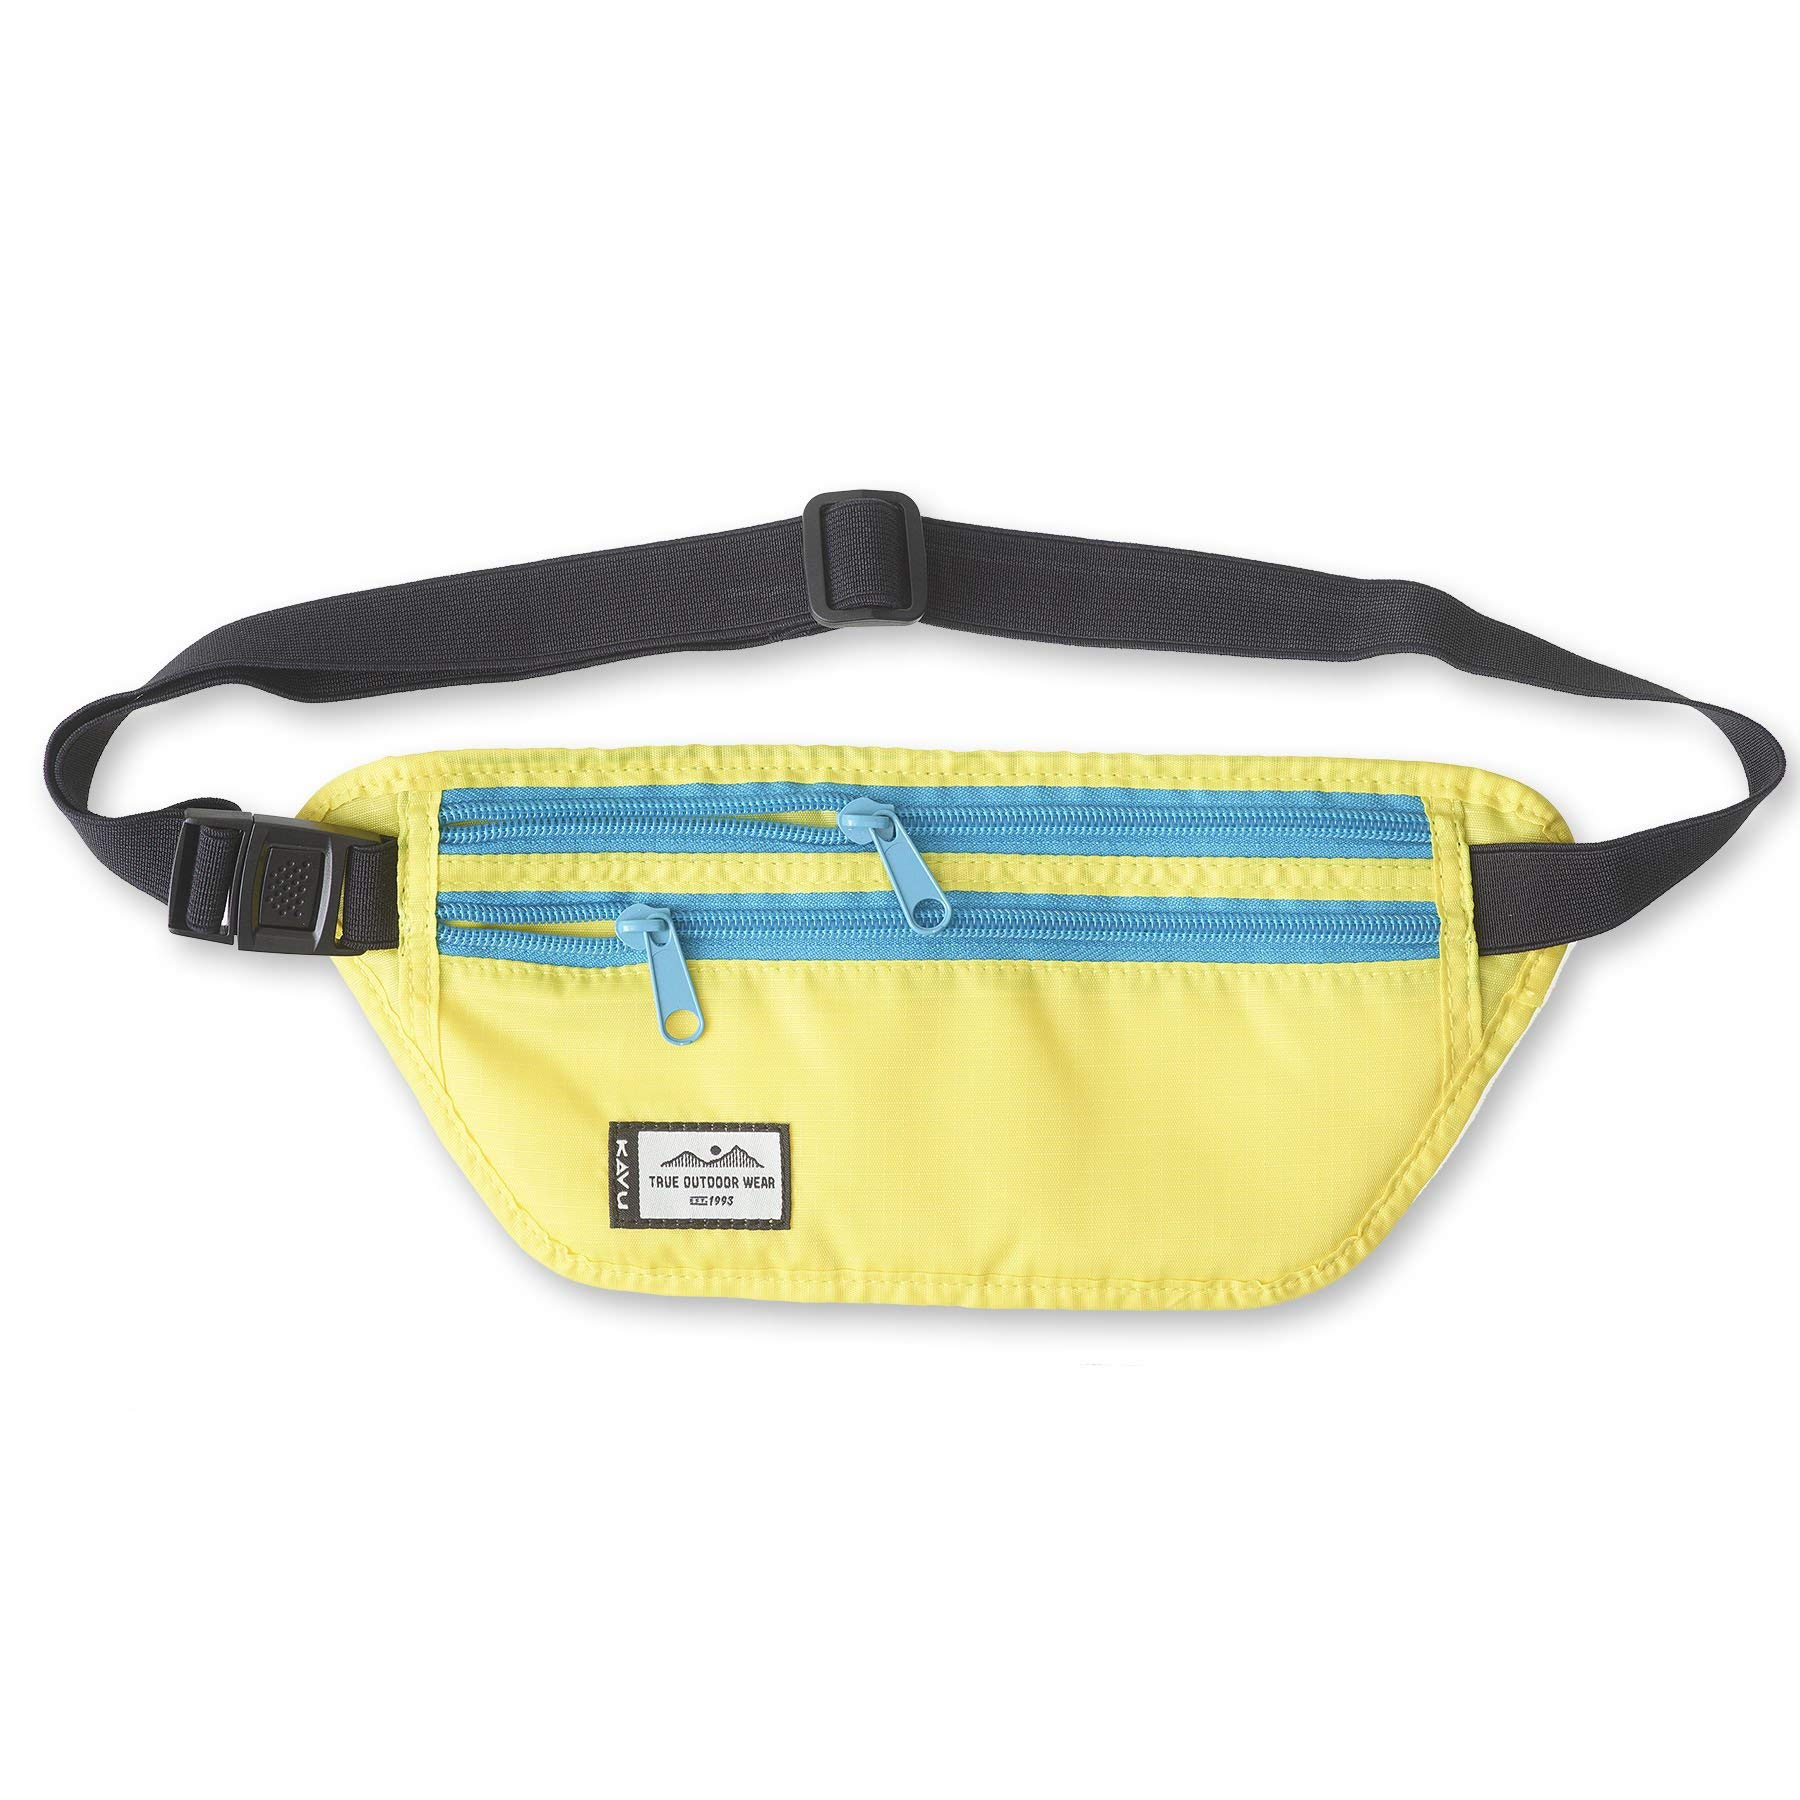 KAVU Hideaway Belt Bag Water Resistant Fanny Pack for Running, Hiking, and Travelling